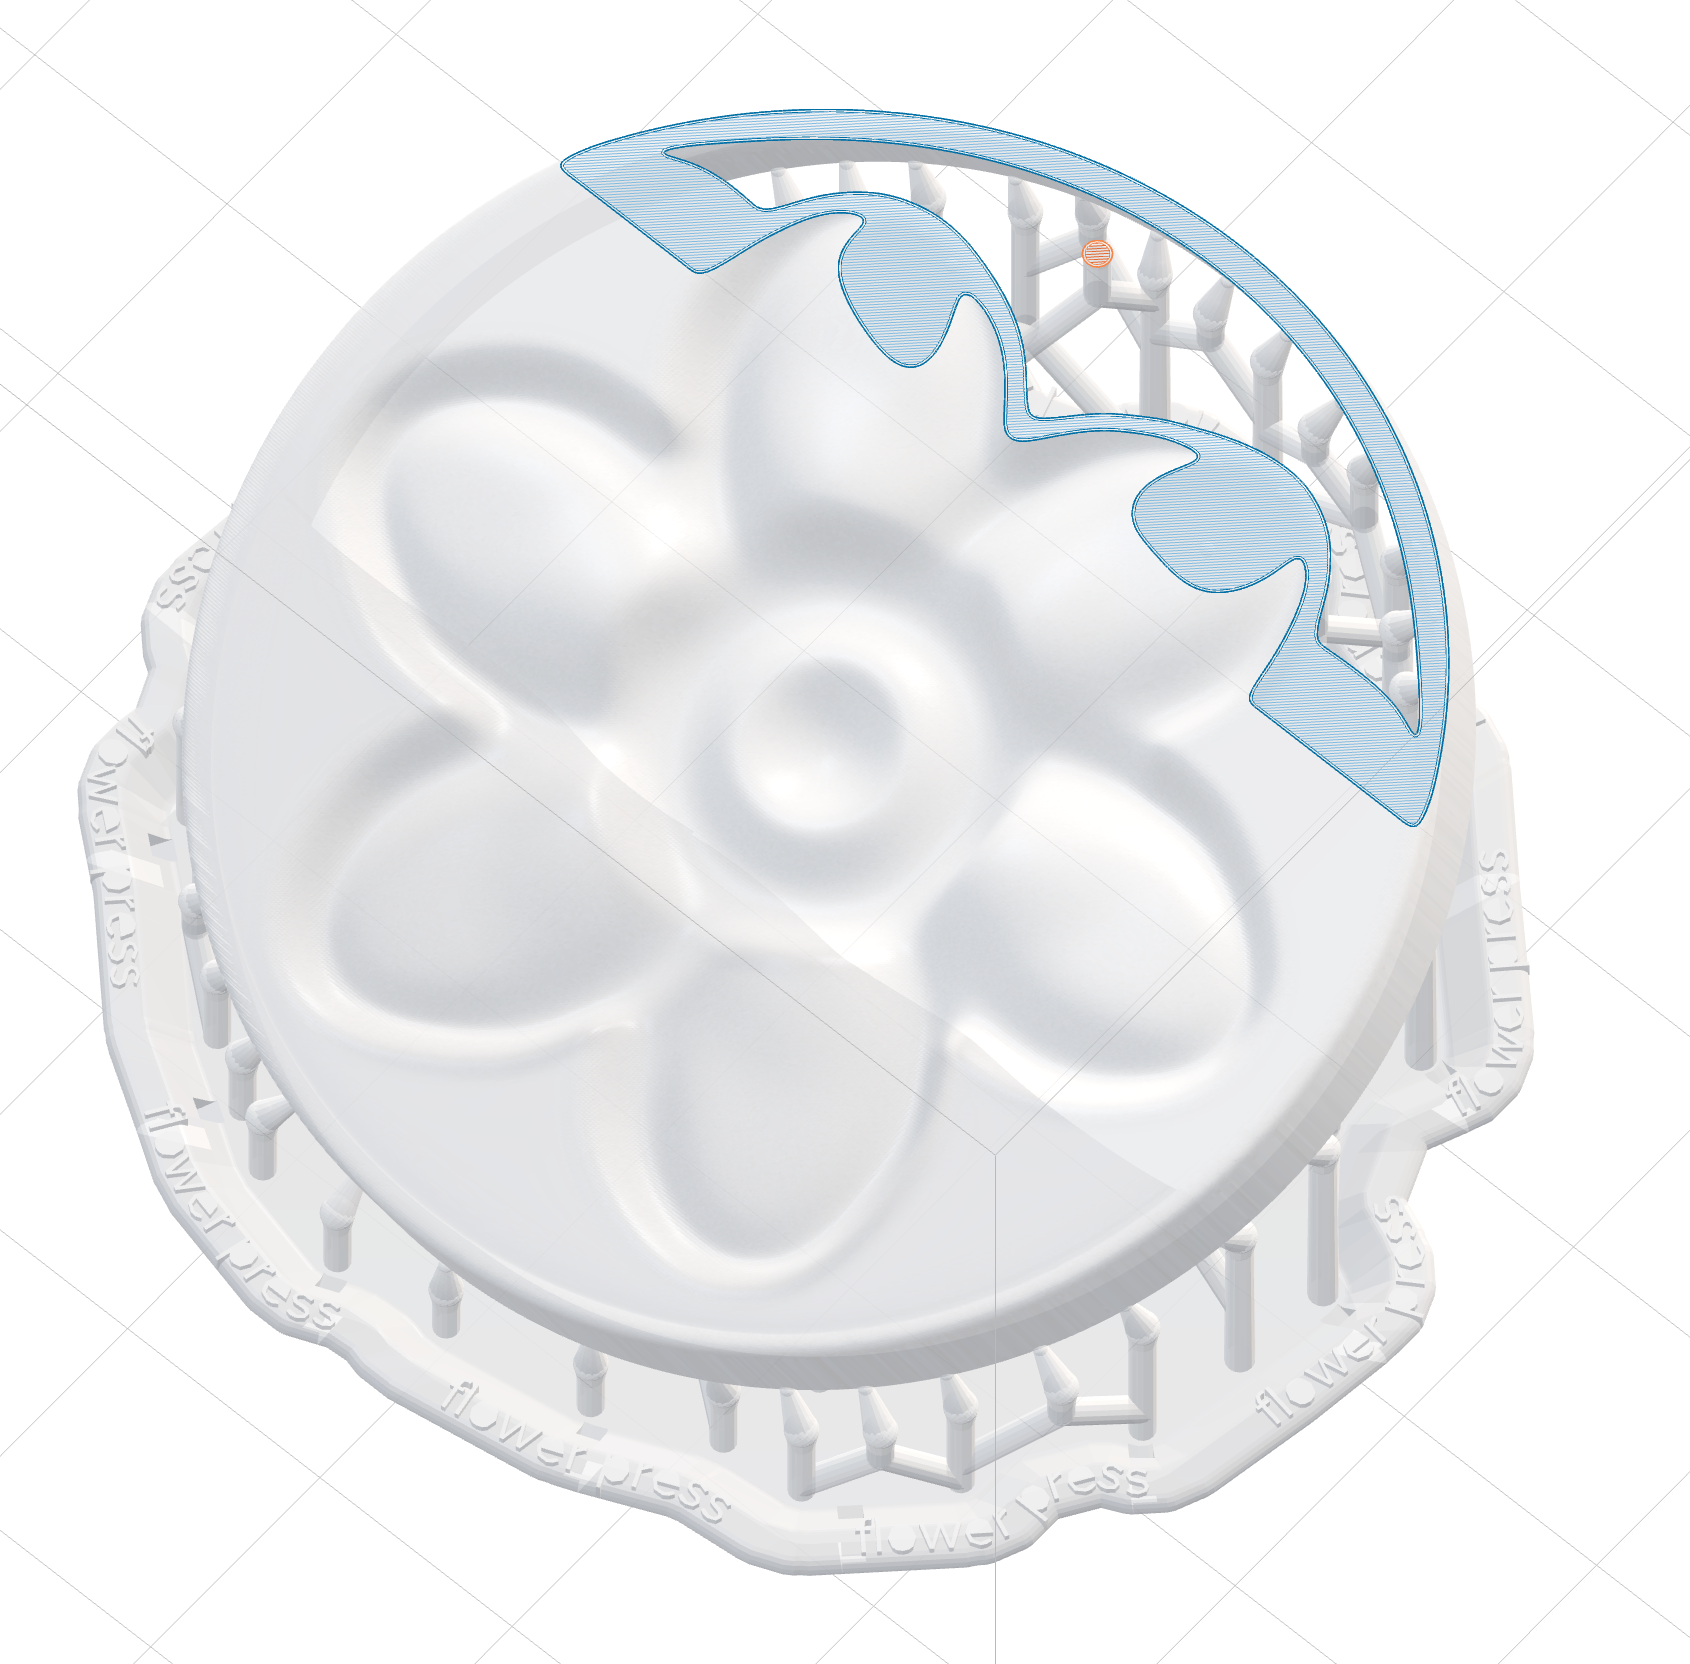 Formlabs' PreForm with shell mold loaded and supports added…also shows cutaway in slicer